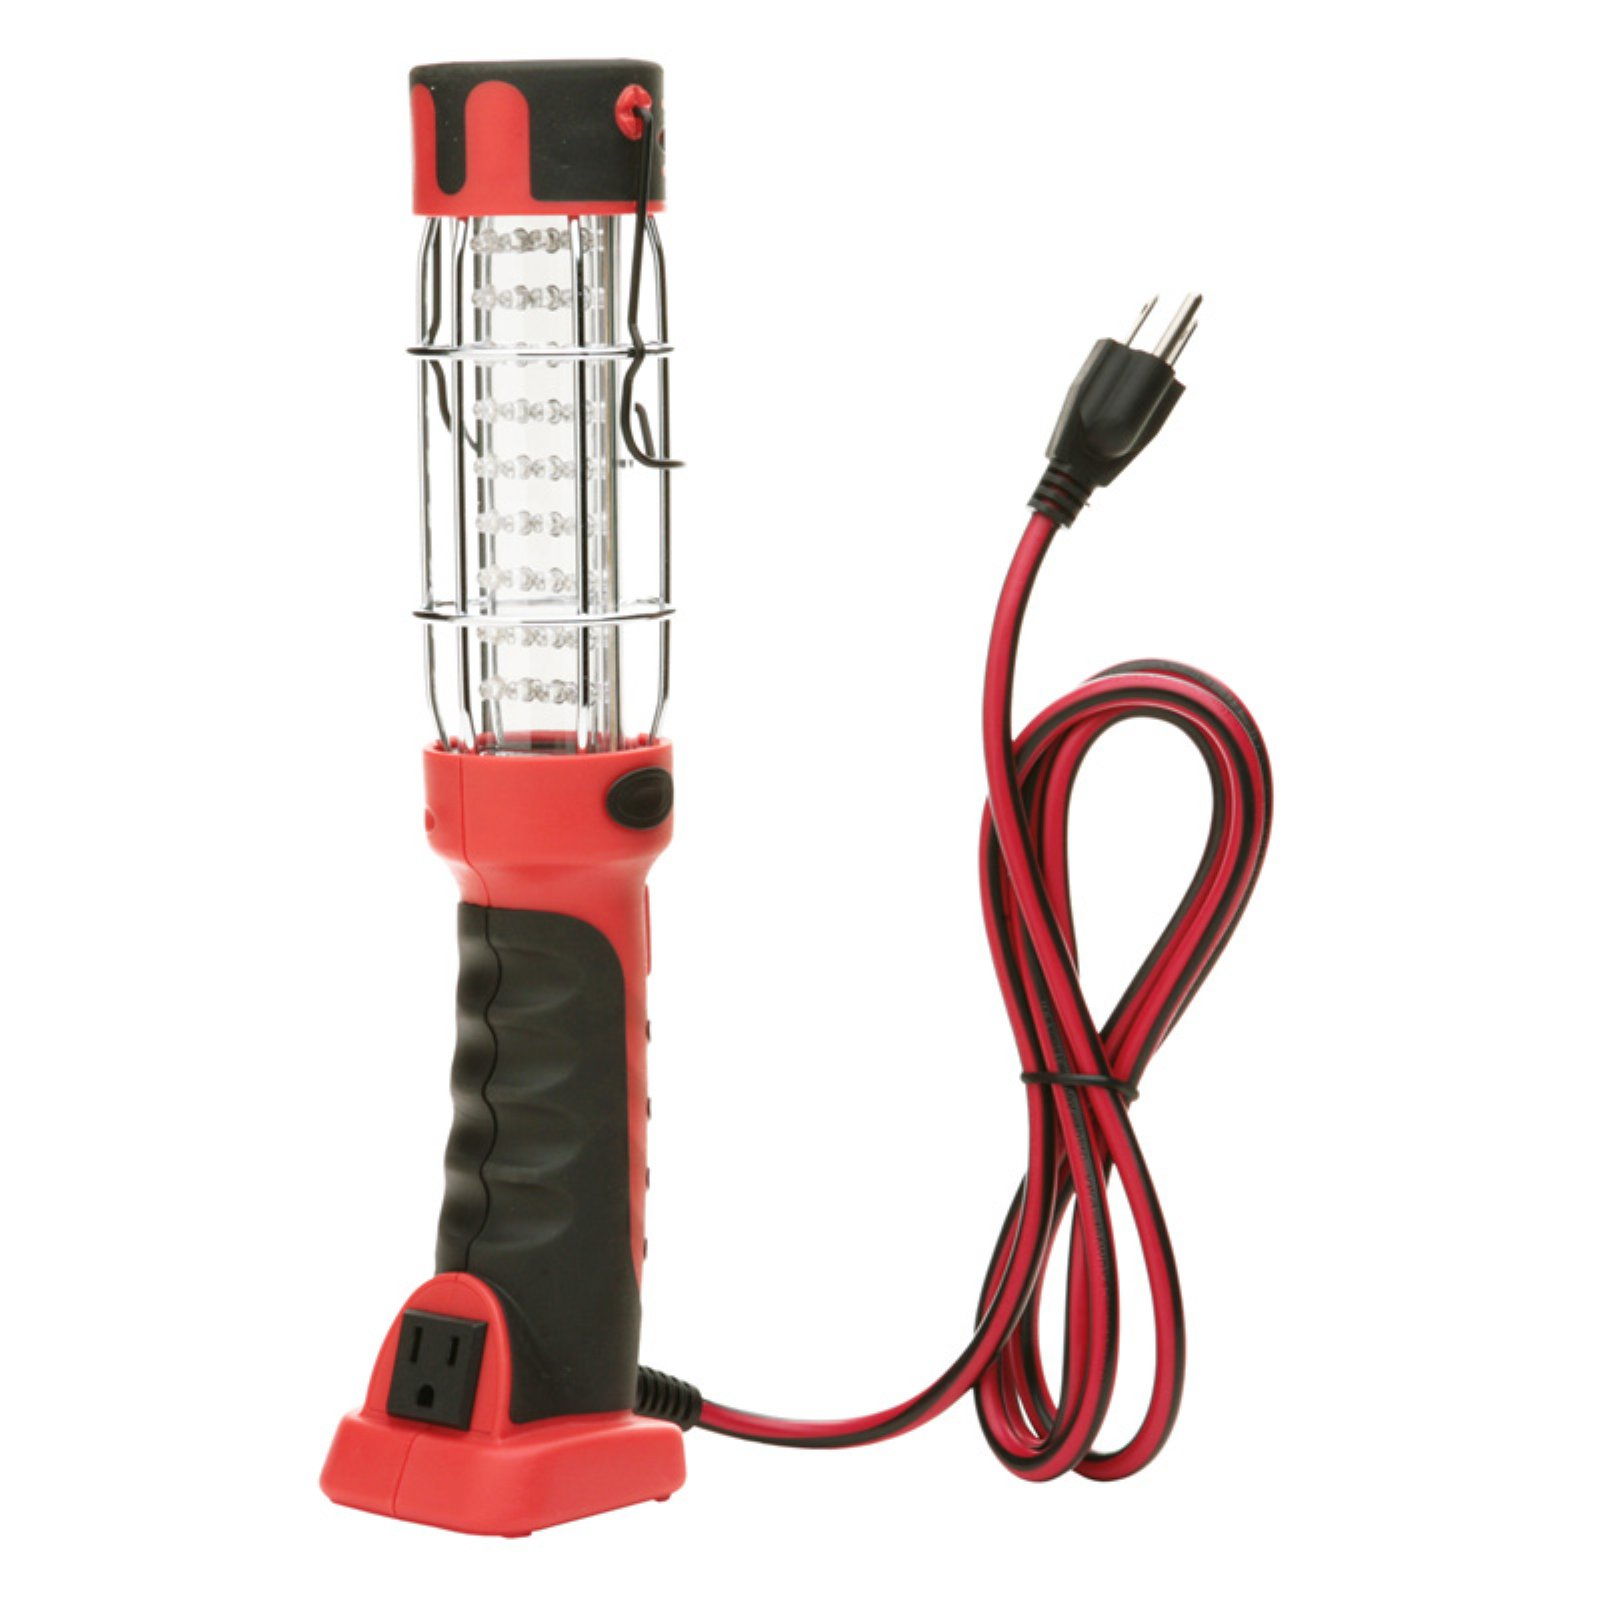 Woods 36-LED Hand Held Work Light with Grounded Outlet, 6-Foot Cord, Red